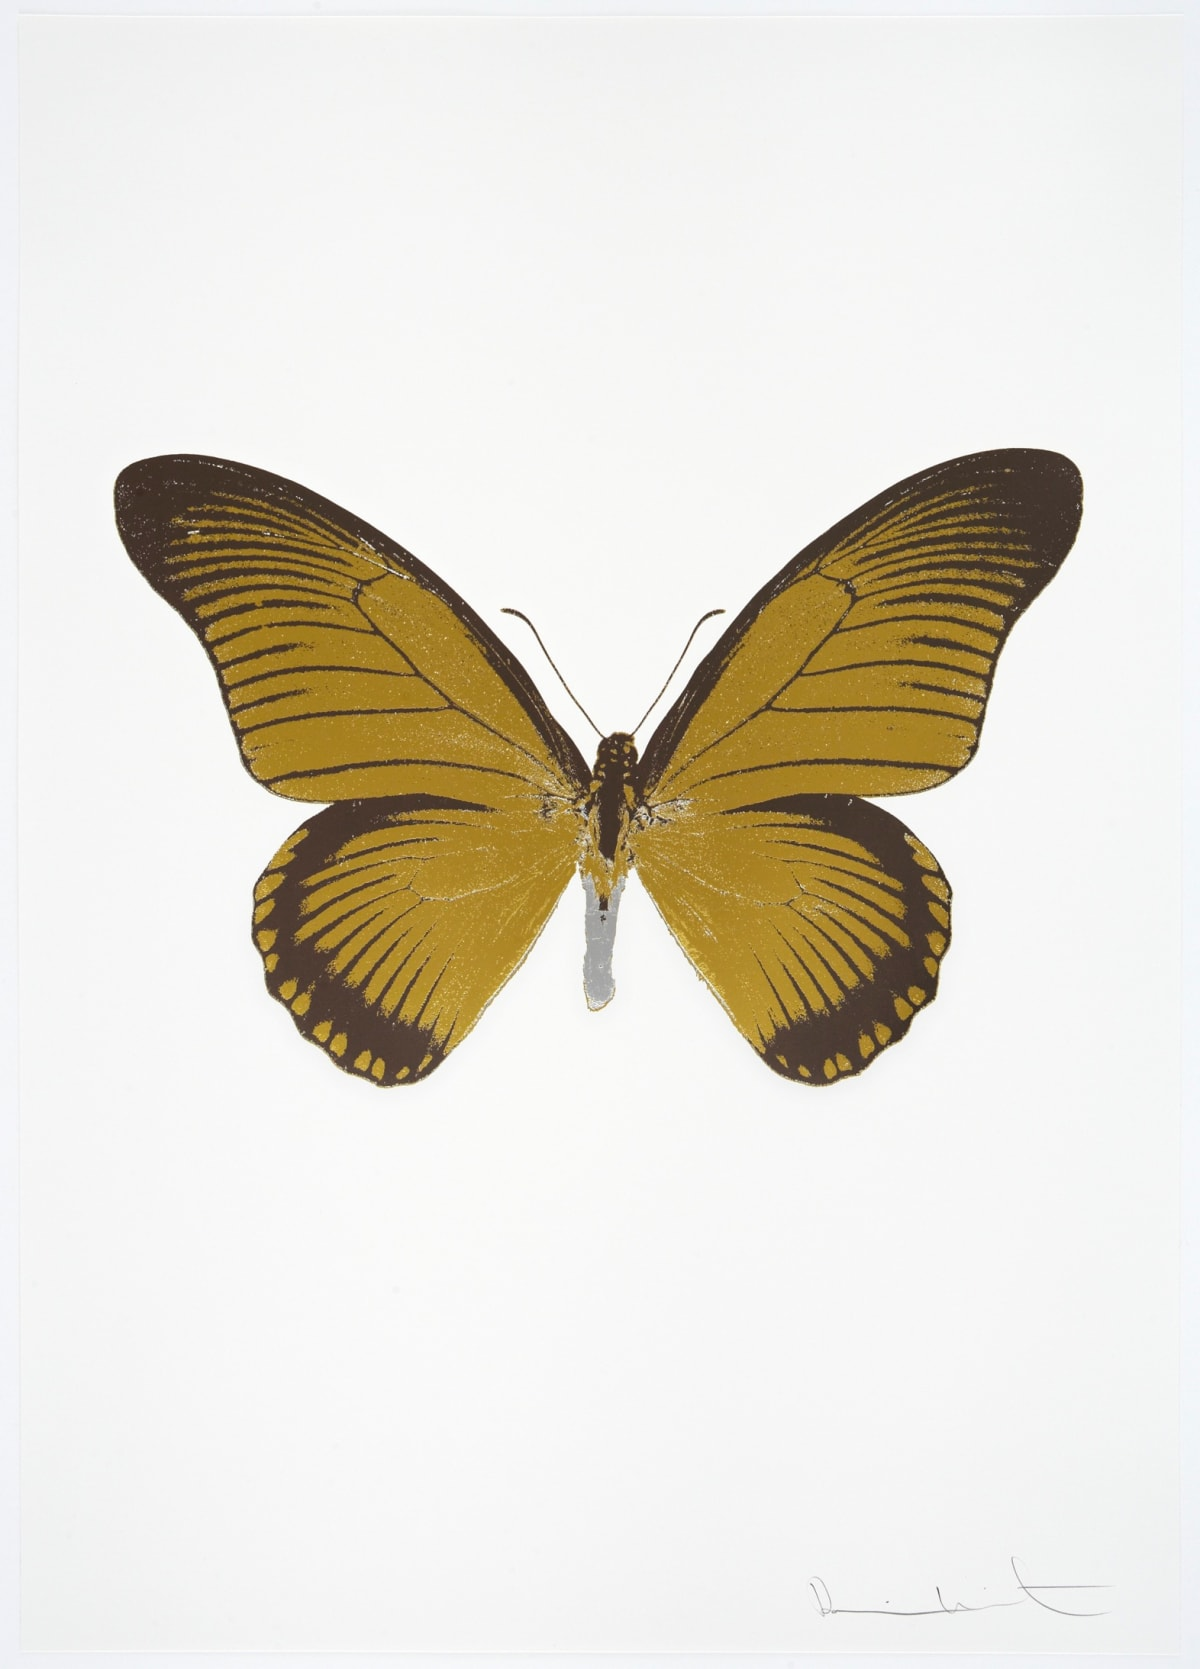 Damien Hirst The Souls IV - Oriental Gold/Gunmetal/Silver Gloss Damien Hirst butterfly foil print for sale Damien Hirst print for sale , 2010 3 colour foil block on 300gsm Arches 88 archival paper. Signed and numbered. Published by Paul Stolper and Other Criteria 72 x 51cm OC8032 / 1418-55 Edition of 15